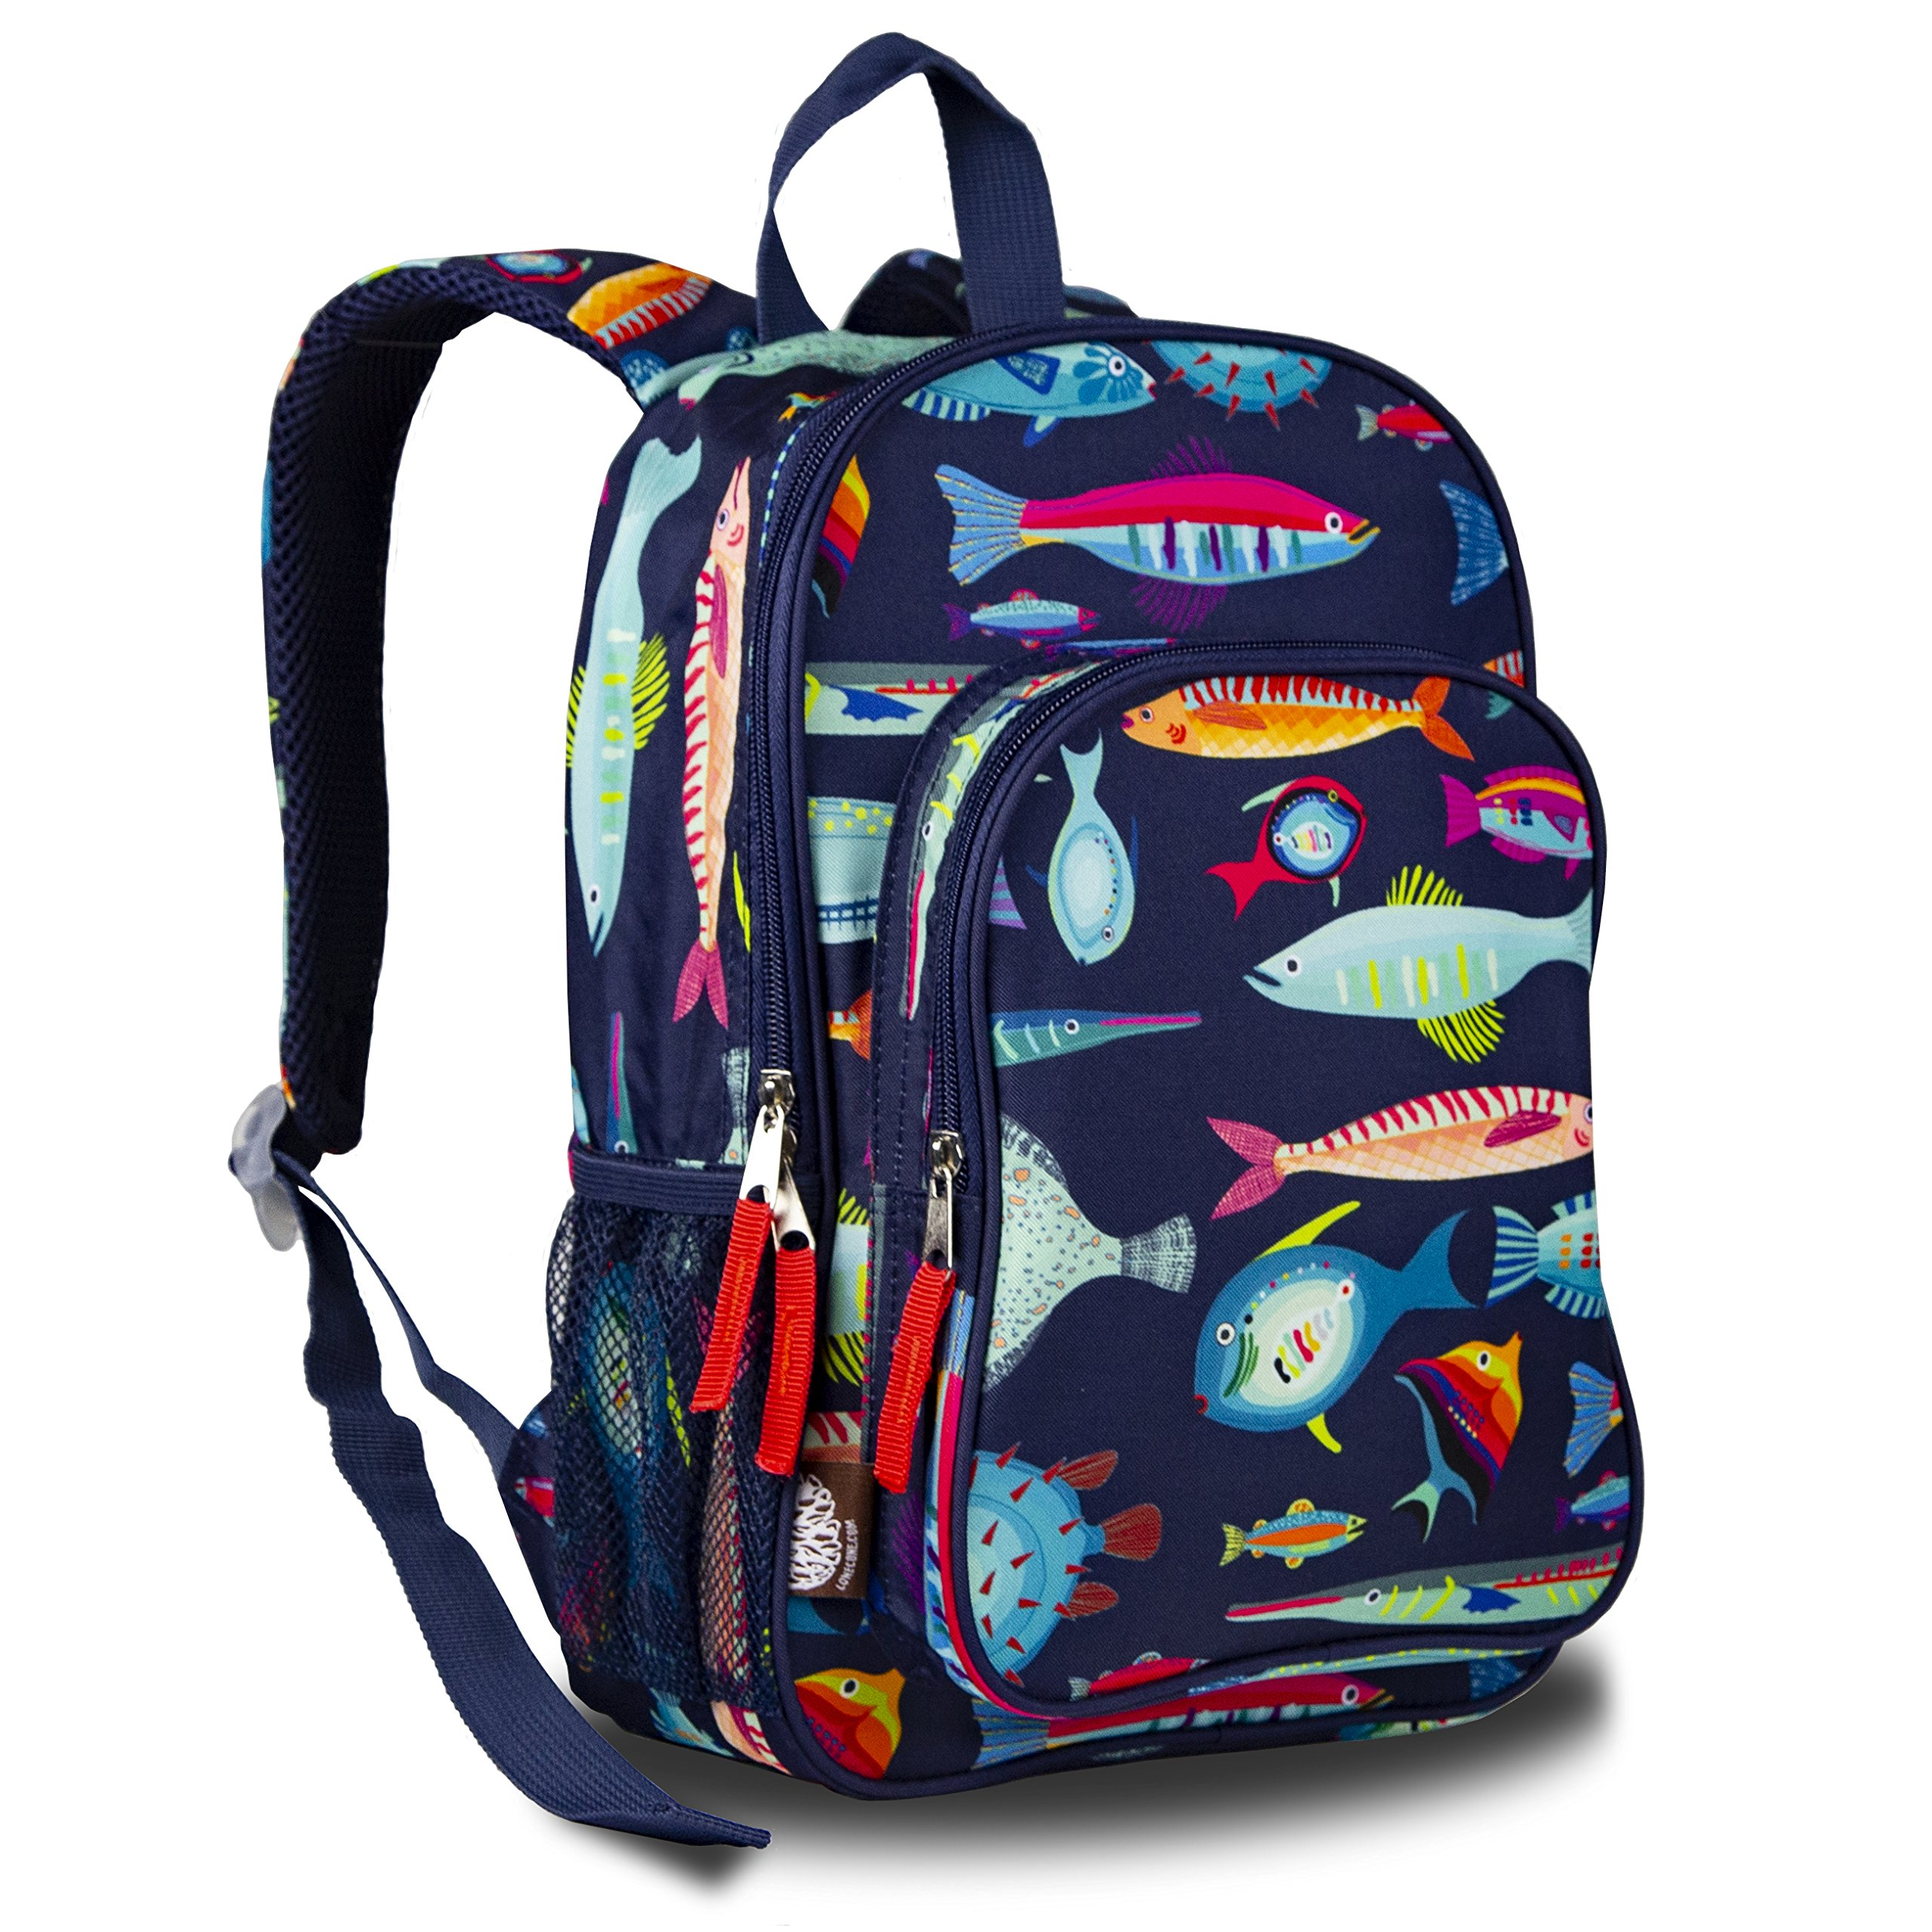 LONECONE Kids' Canvas Preschool Backpack - Integrated Tablet Sleeve, School of Fish by LONECONE (Image #6)